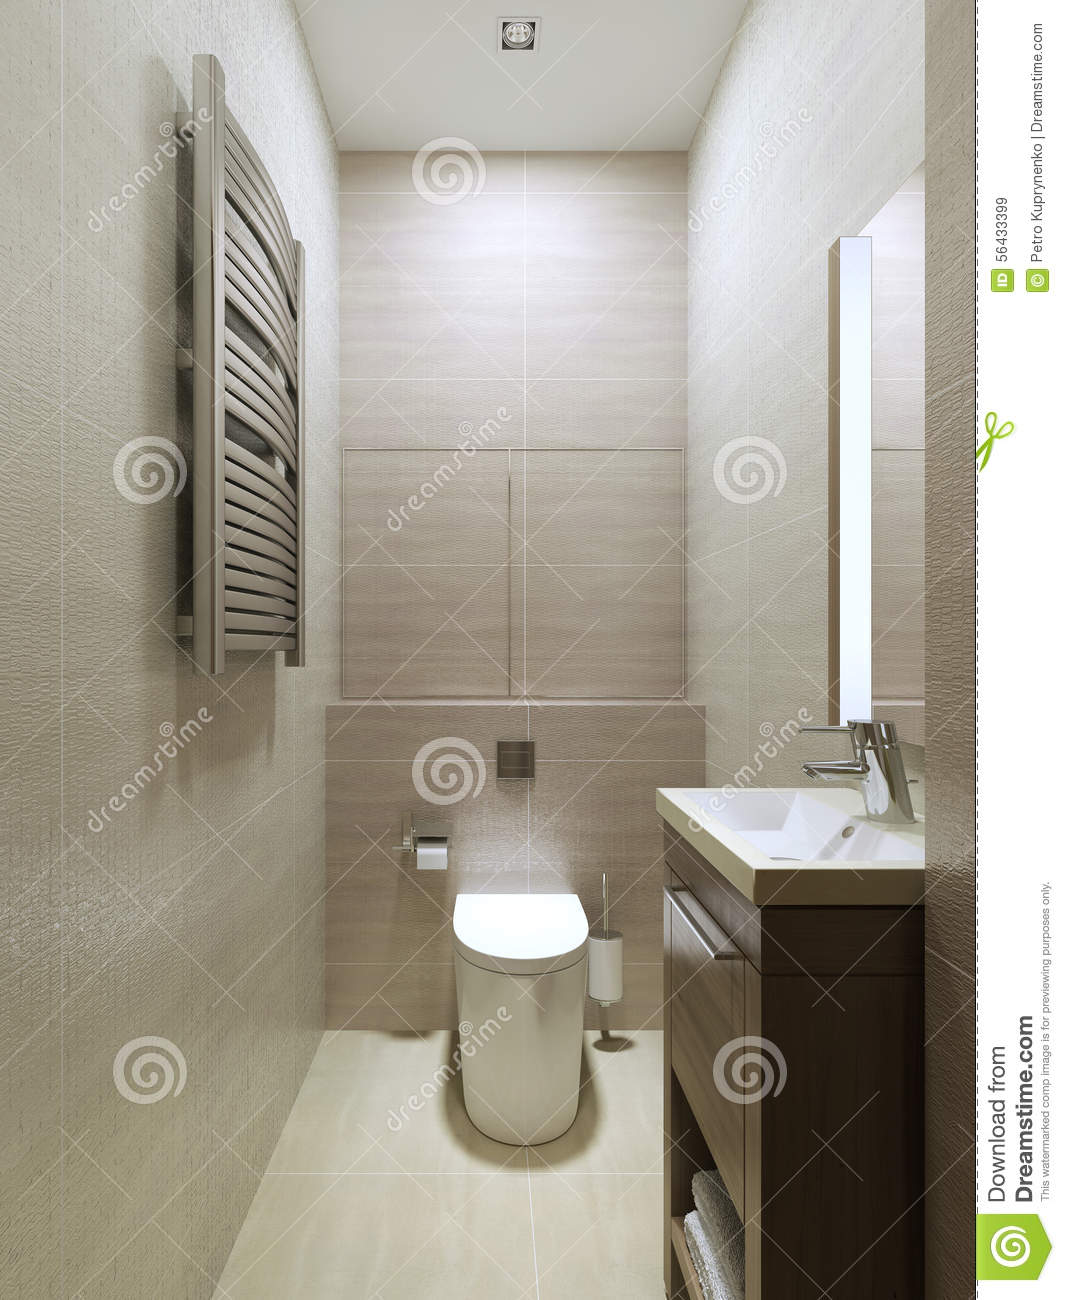 Wc modern style stock image image of interior pink for Carrelage mural toilettes